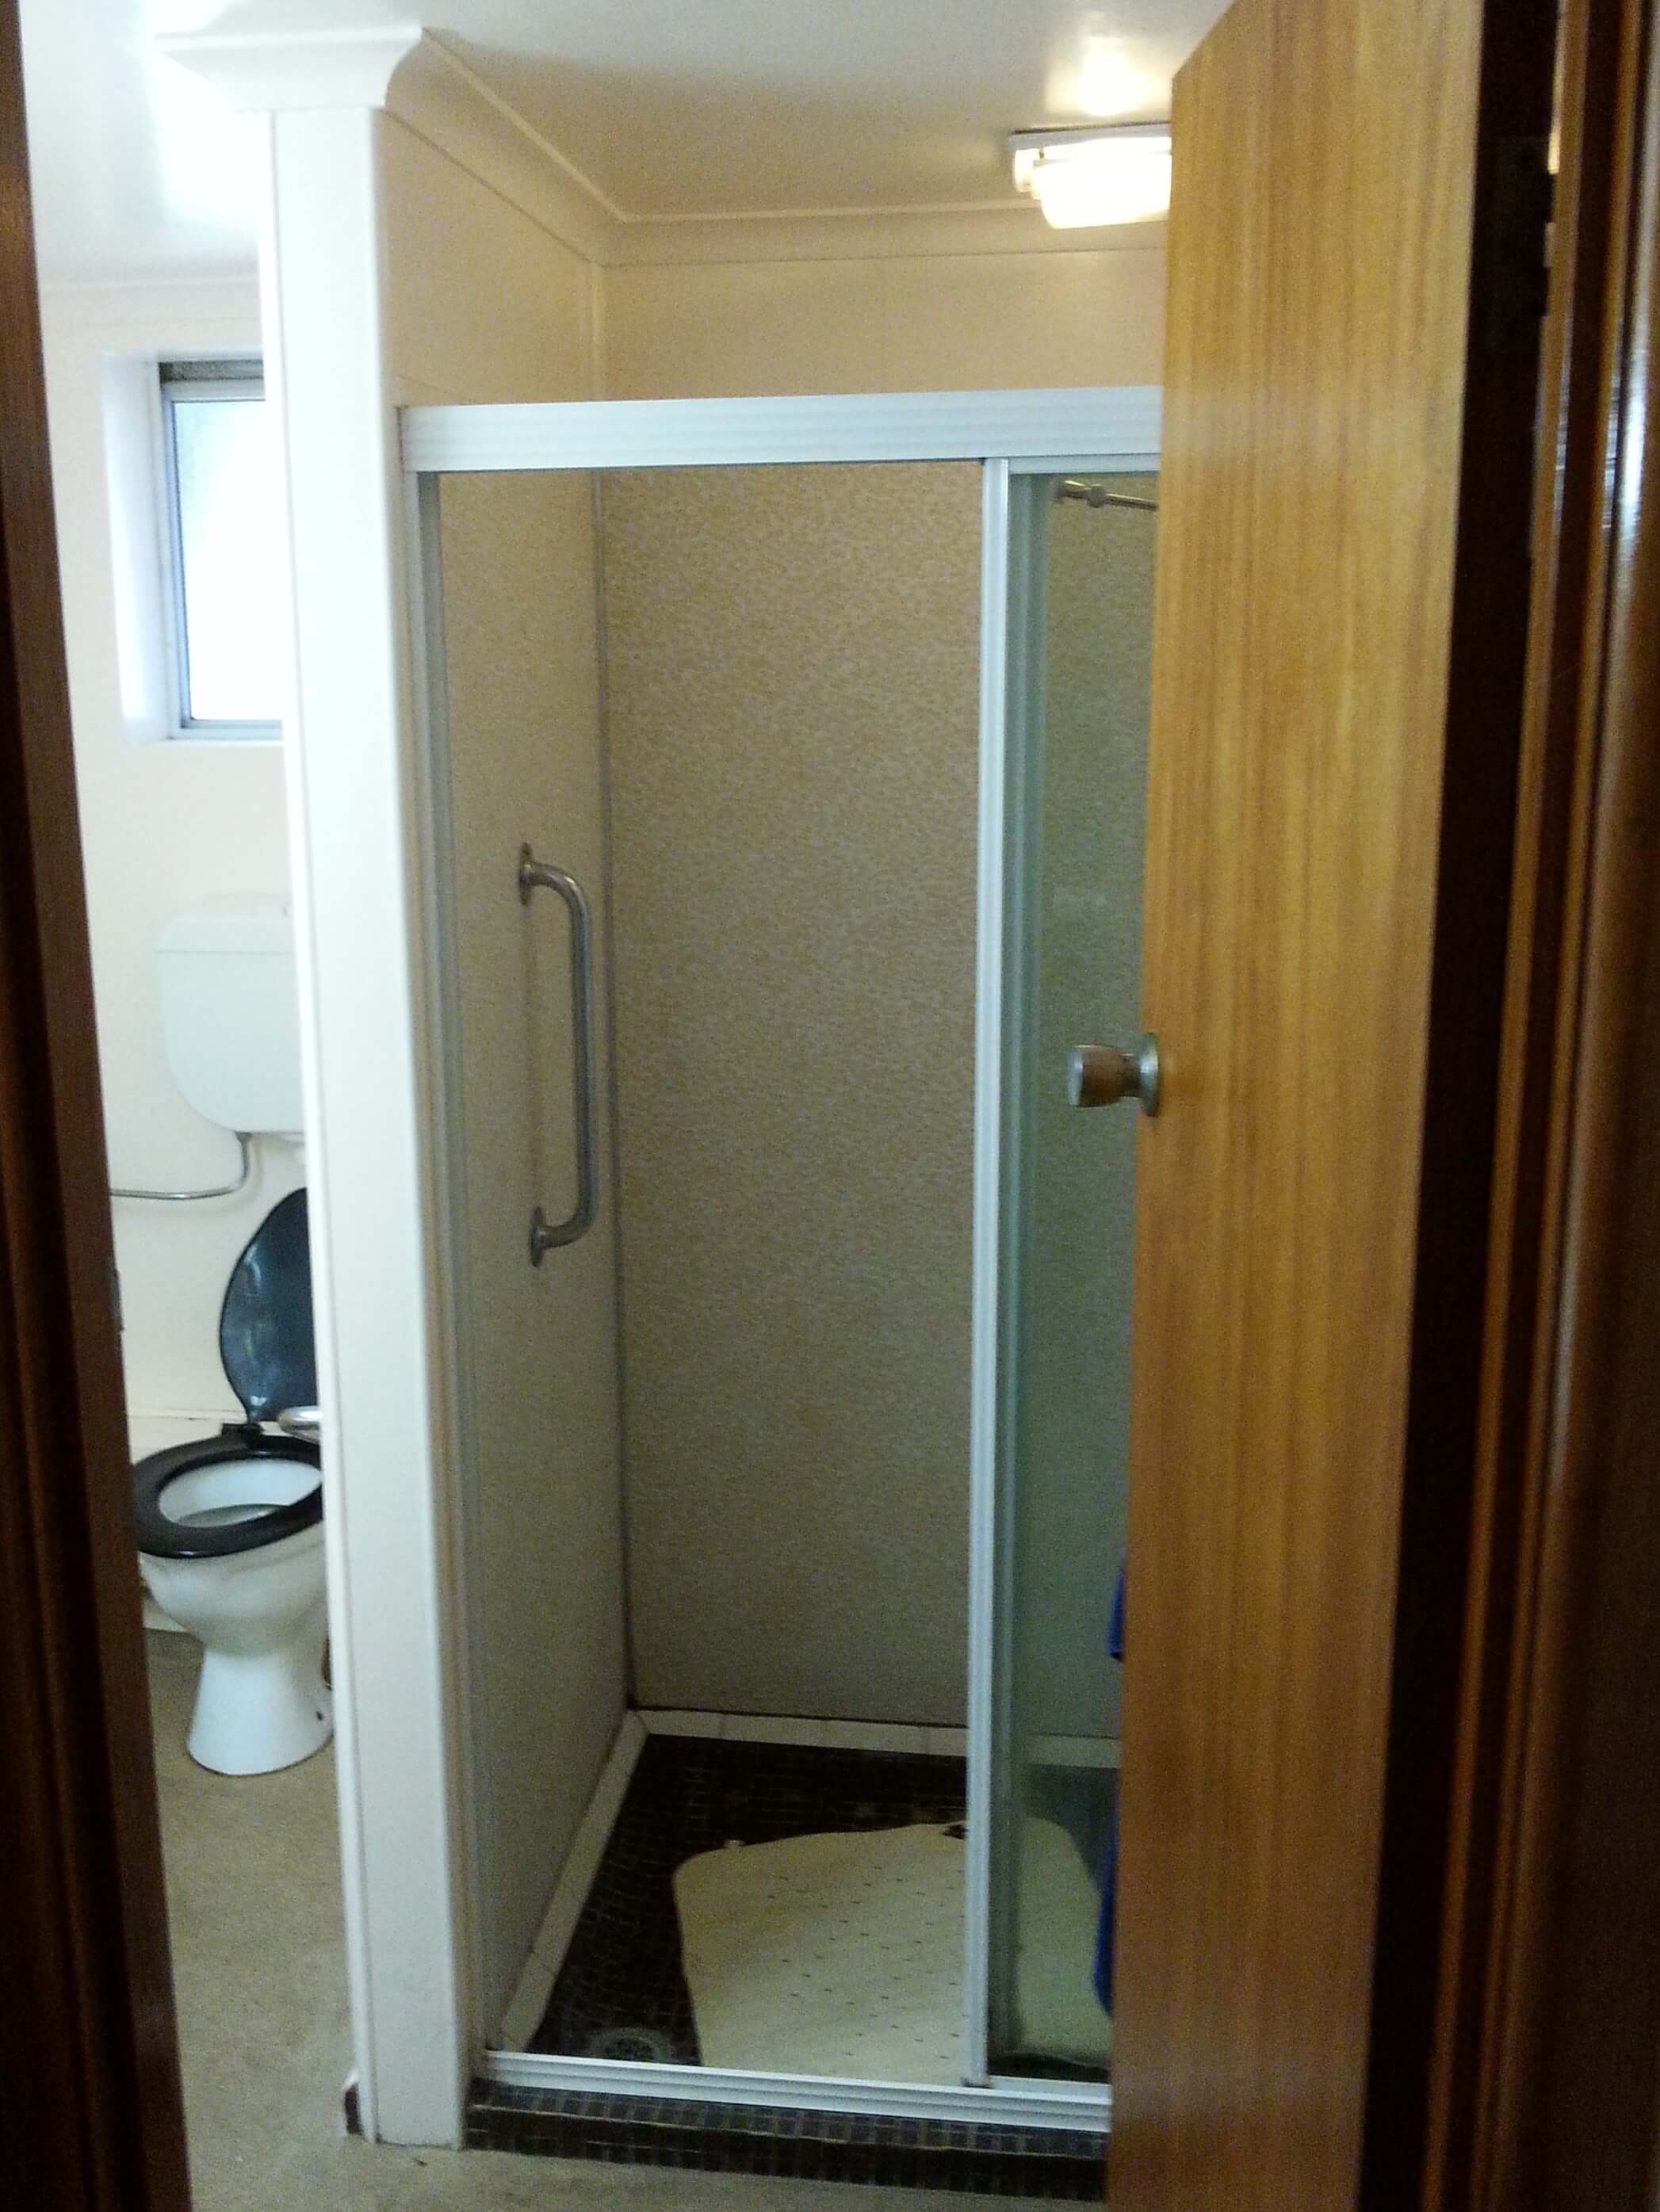 1960s Bathroom before renovation